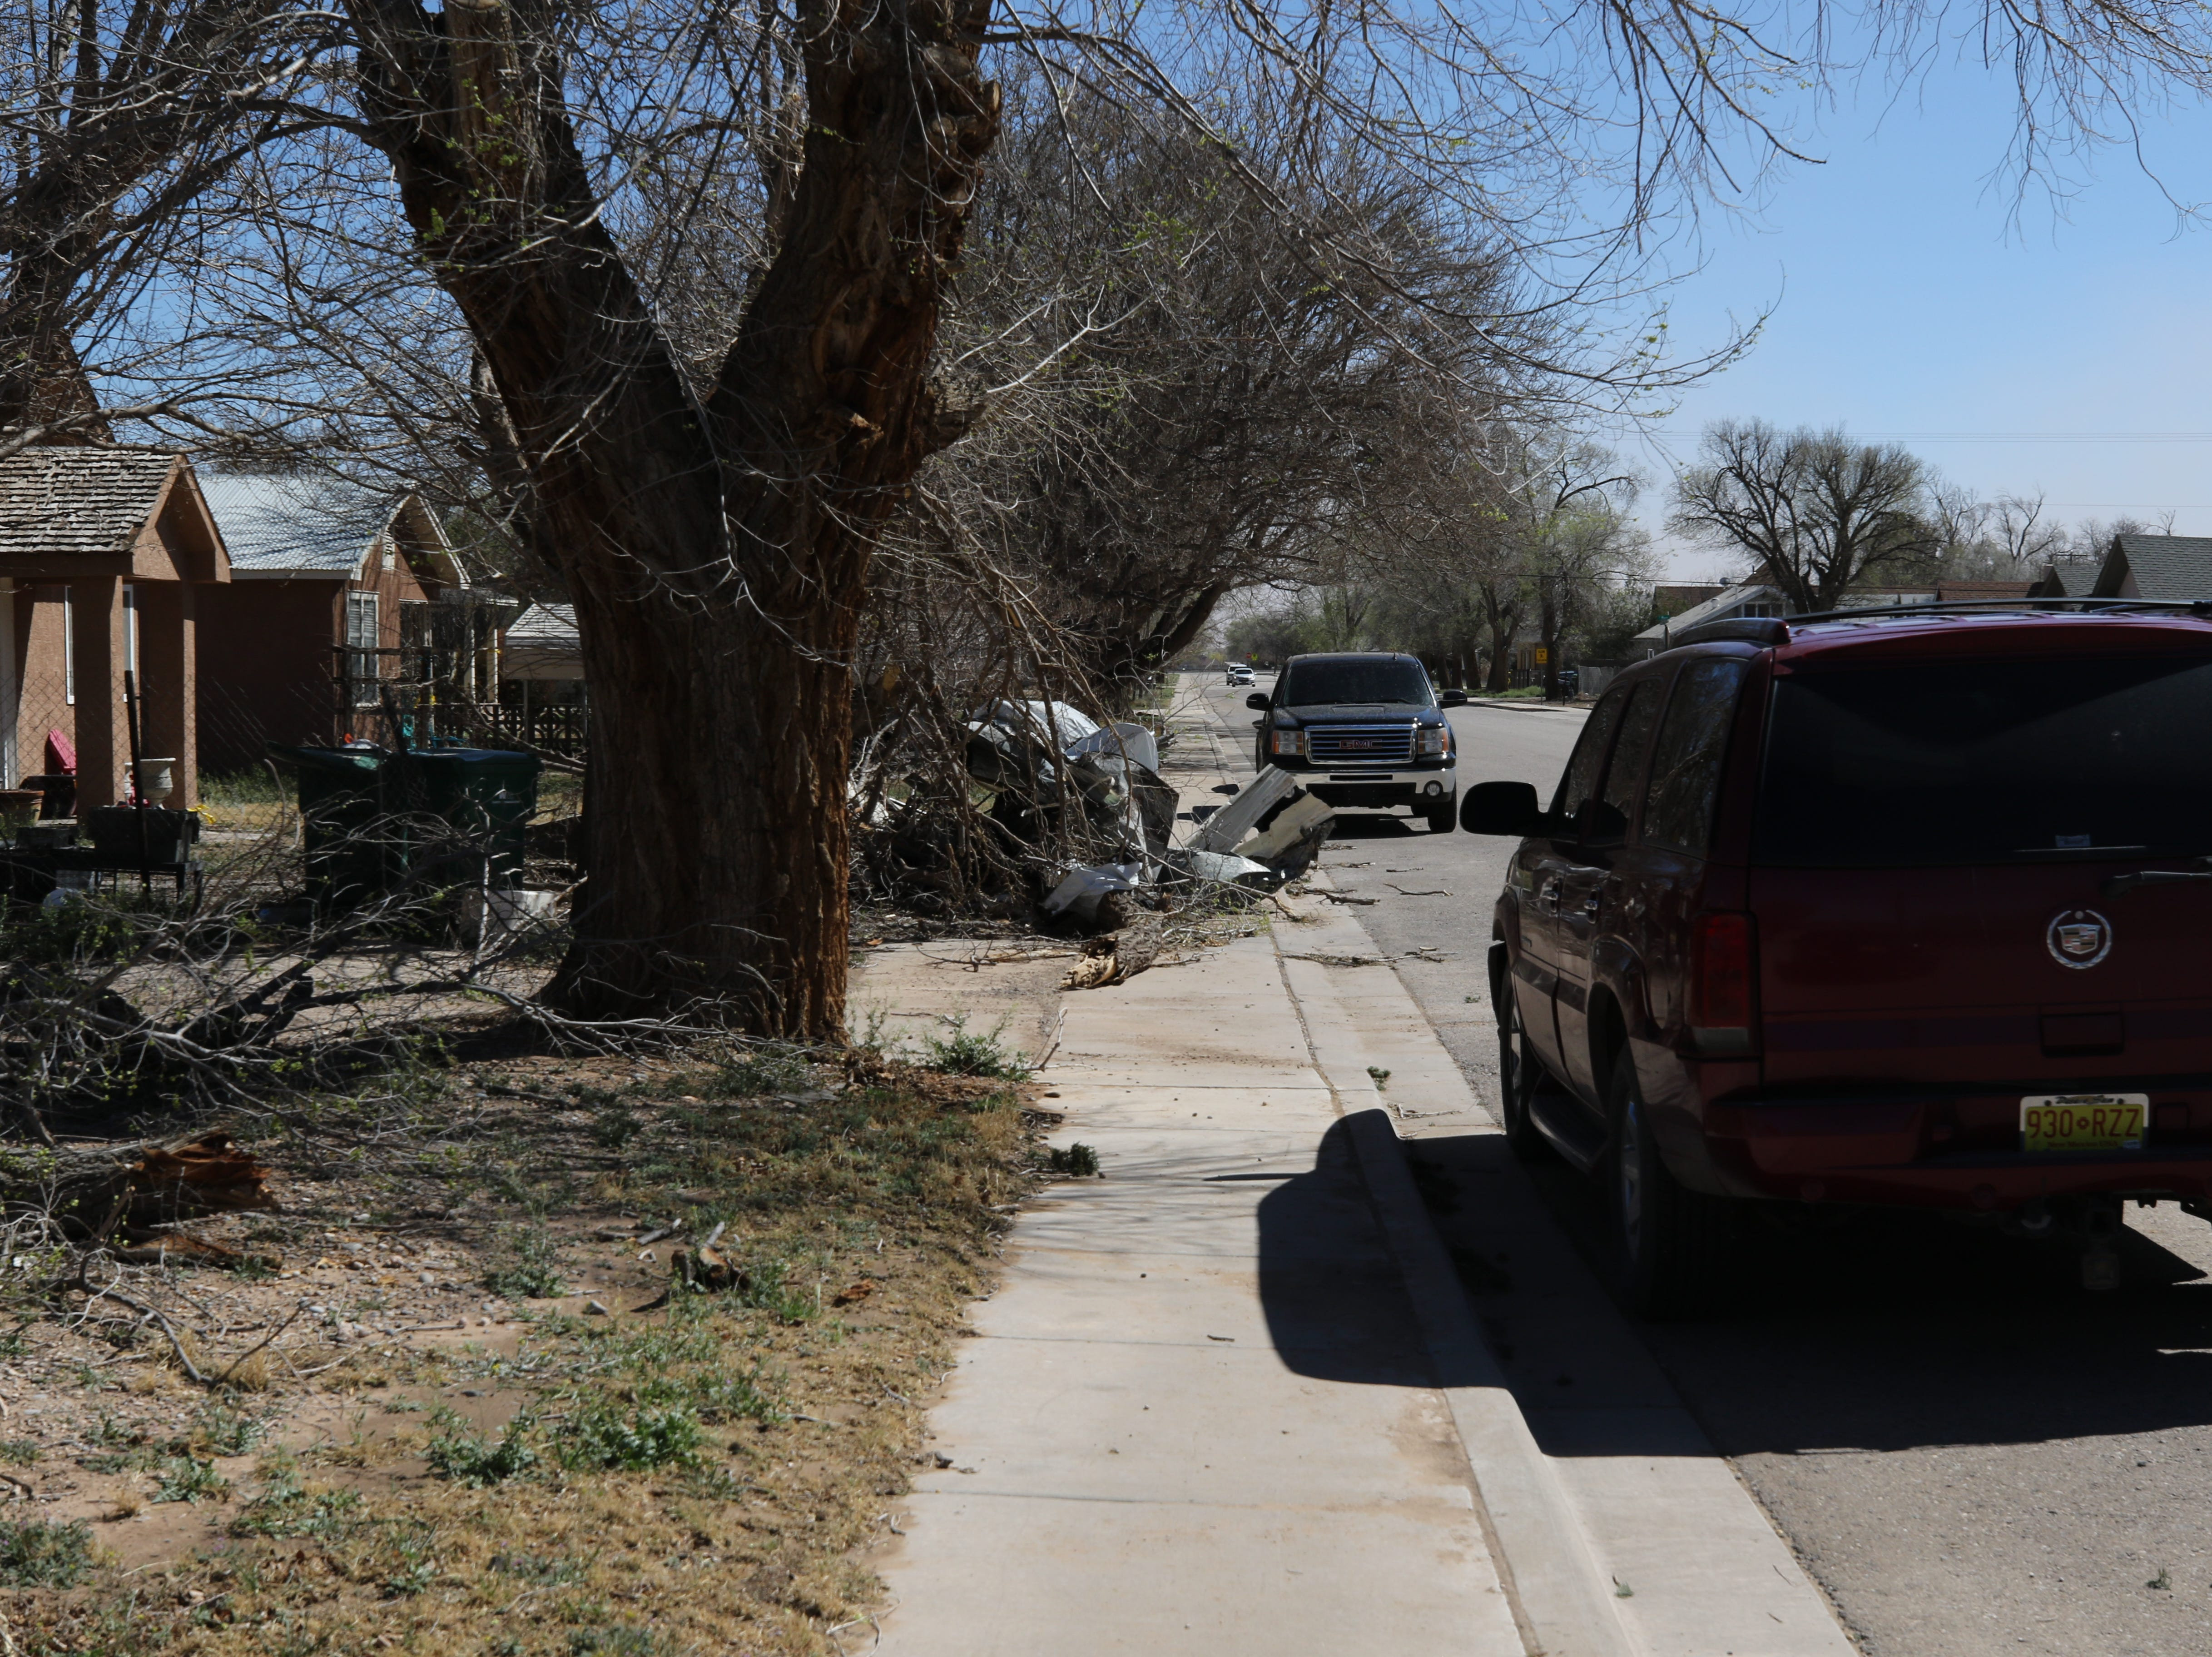 Debris and downed limbs affected a Dexter, New Mexico neighborhood after a tornado struck the farming community Tuesday.